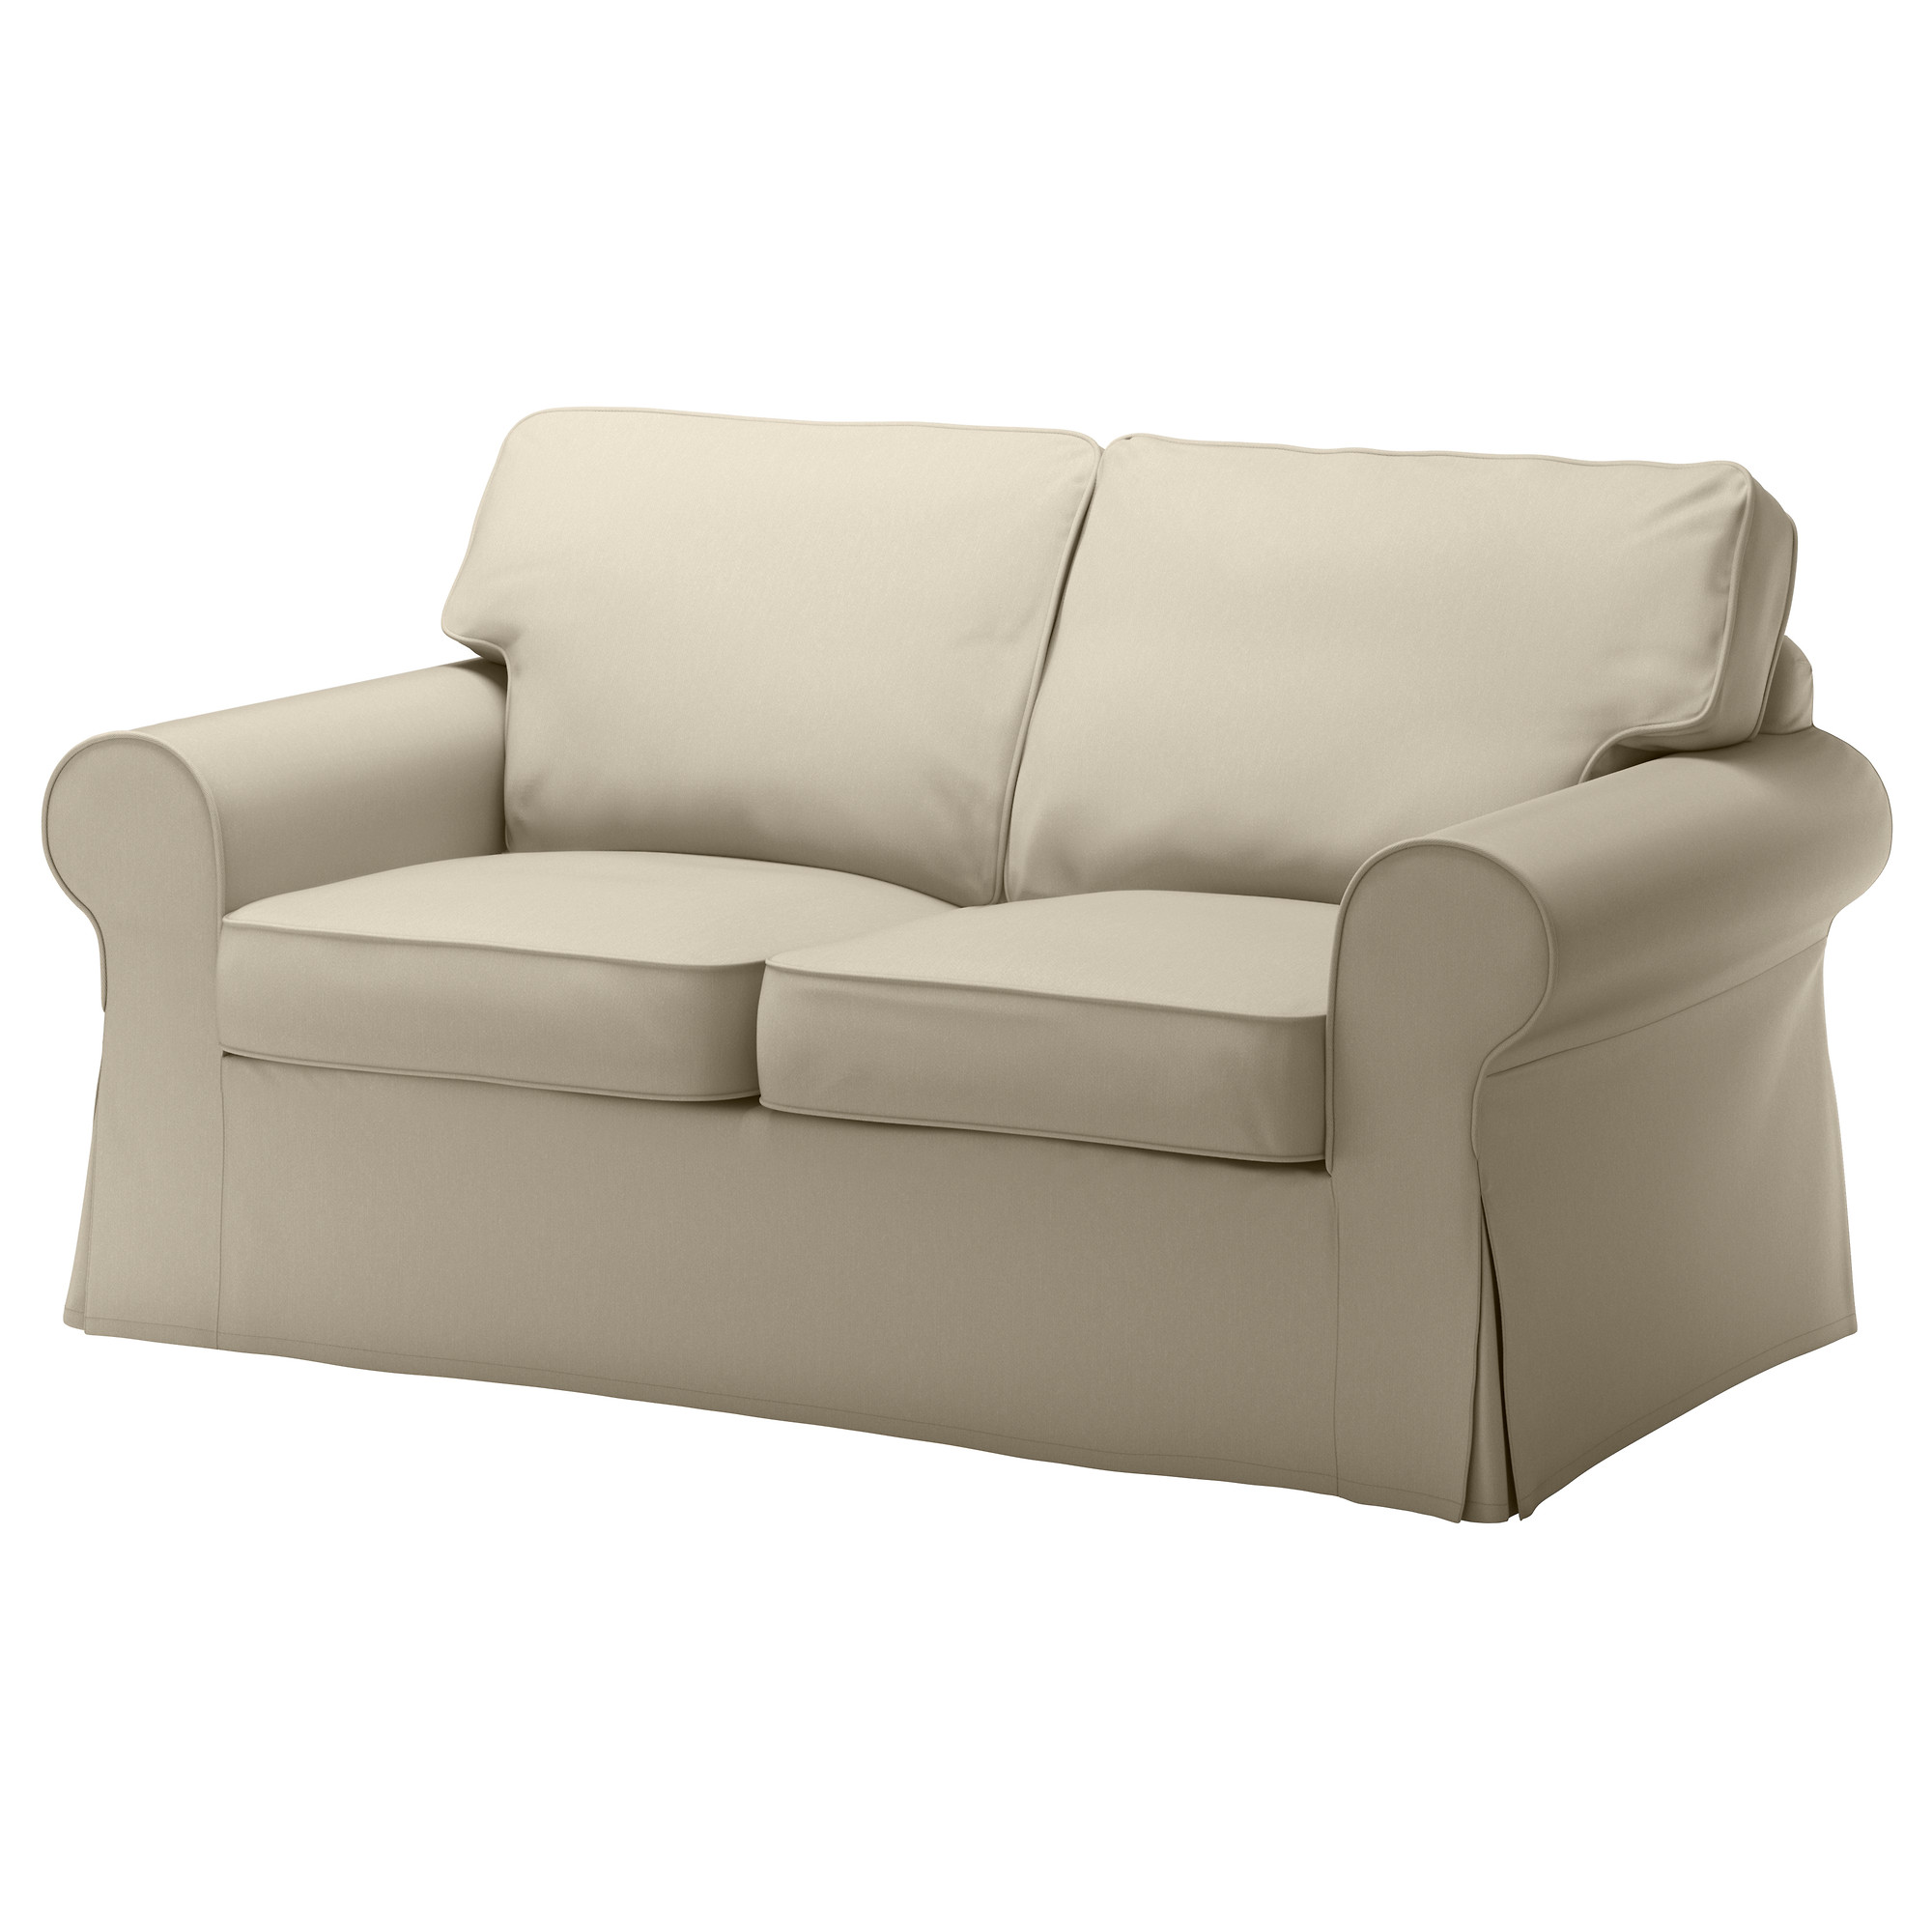 Love Seat Slip Covers For Stunning Outlook In The Living Room Homesfeed